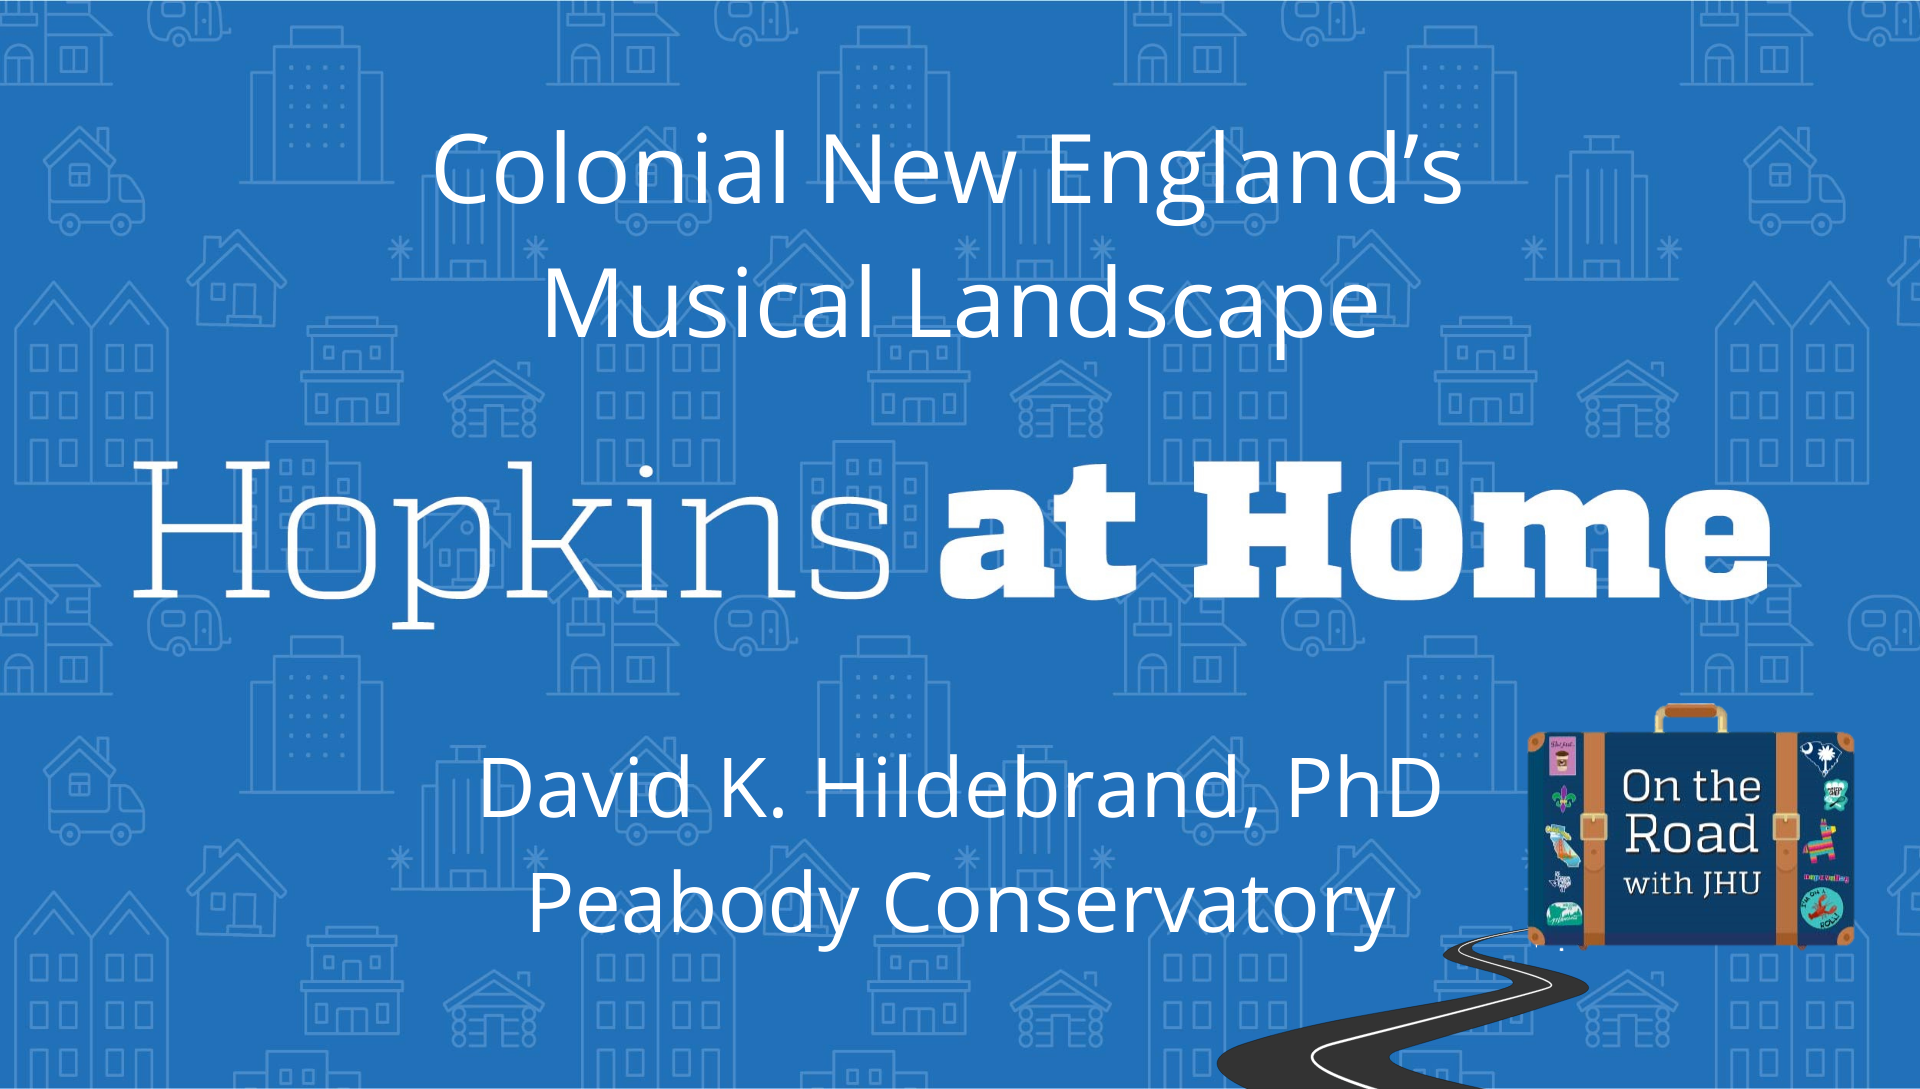 Colonial New England's Musical Landscape Header Image